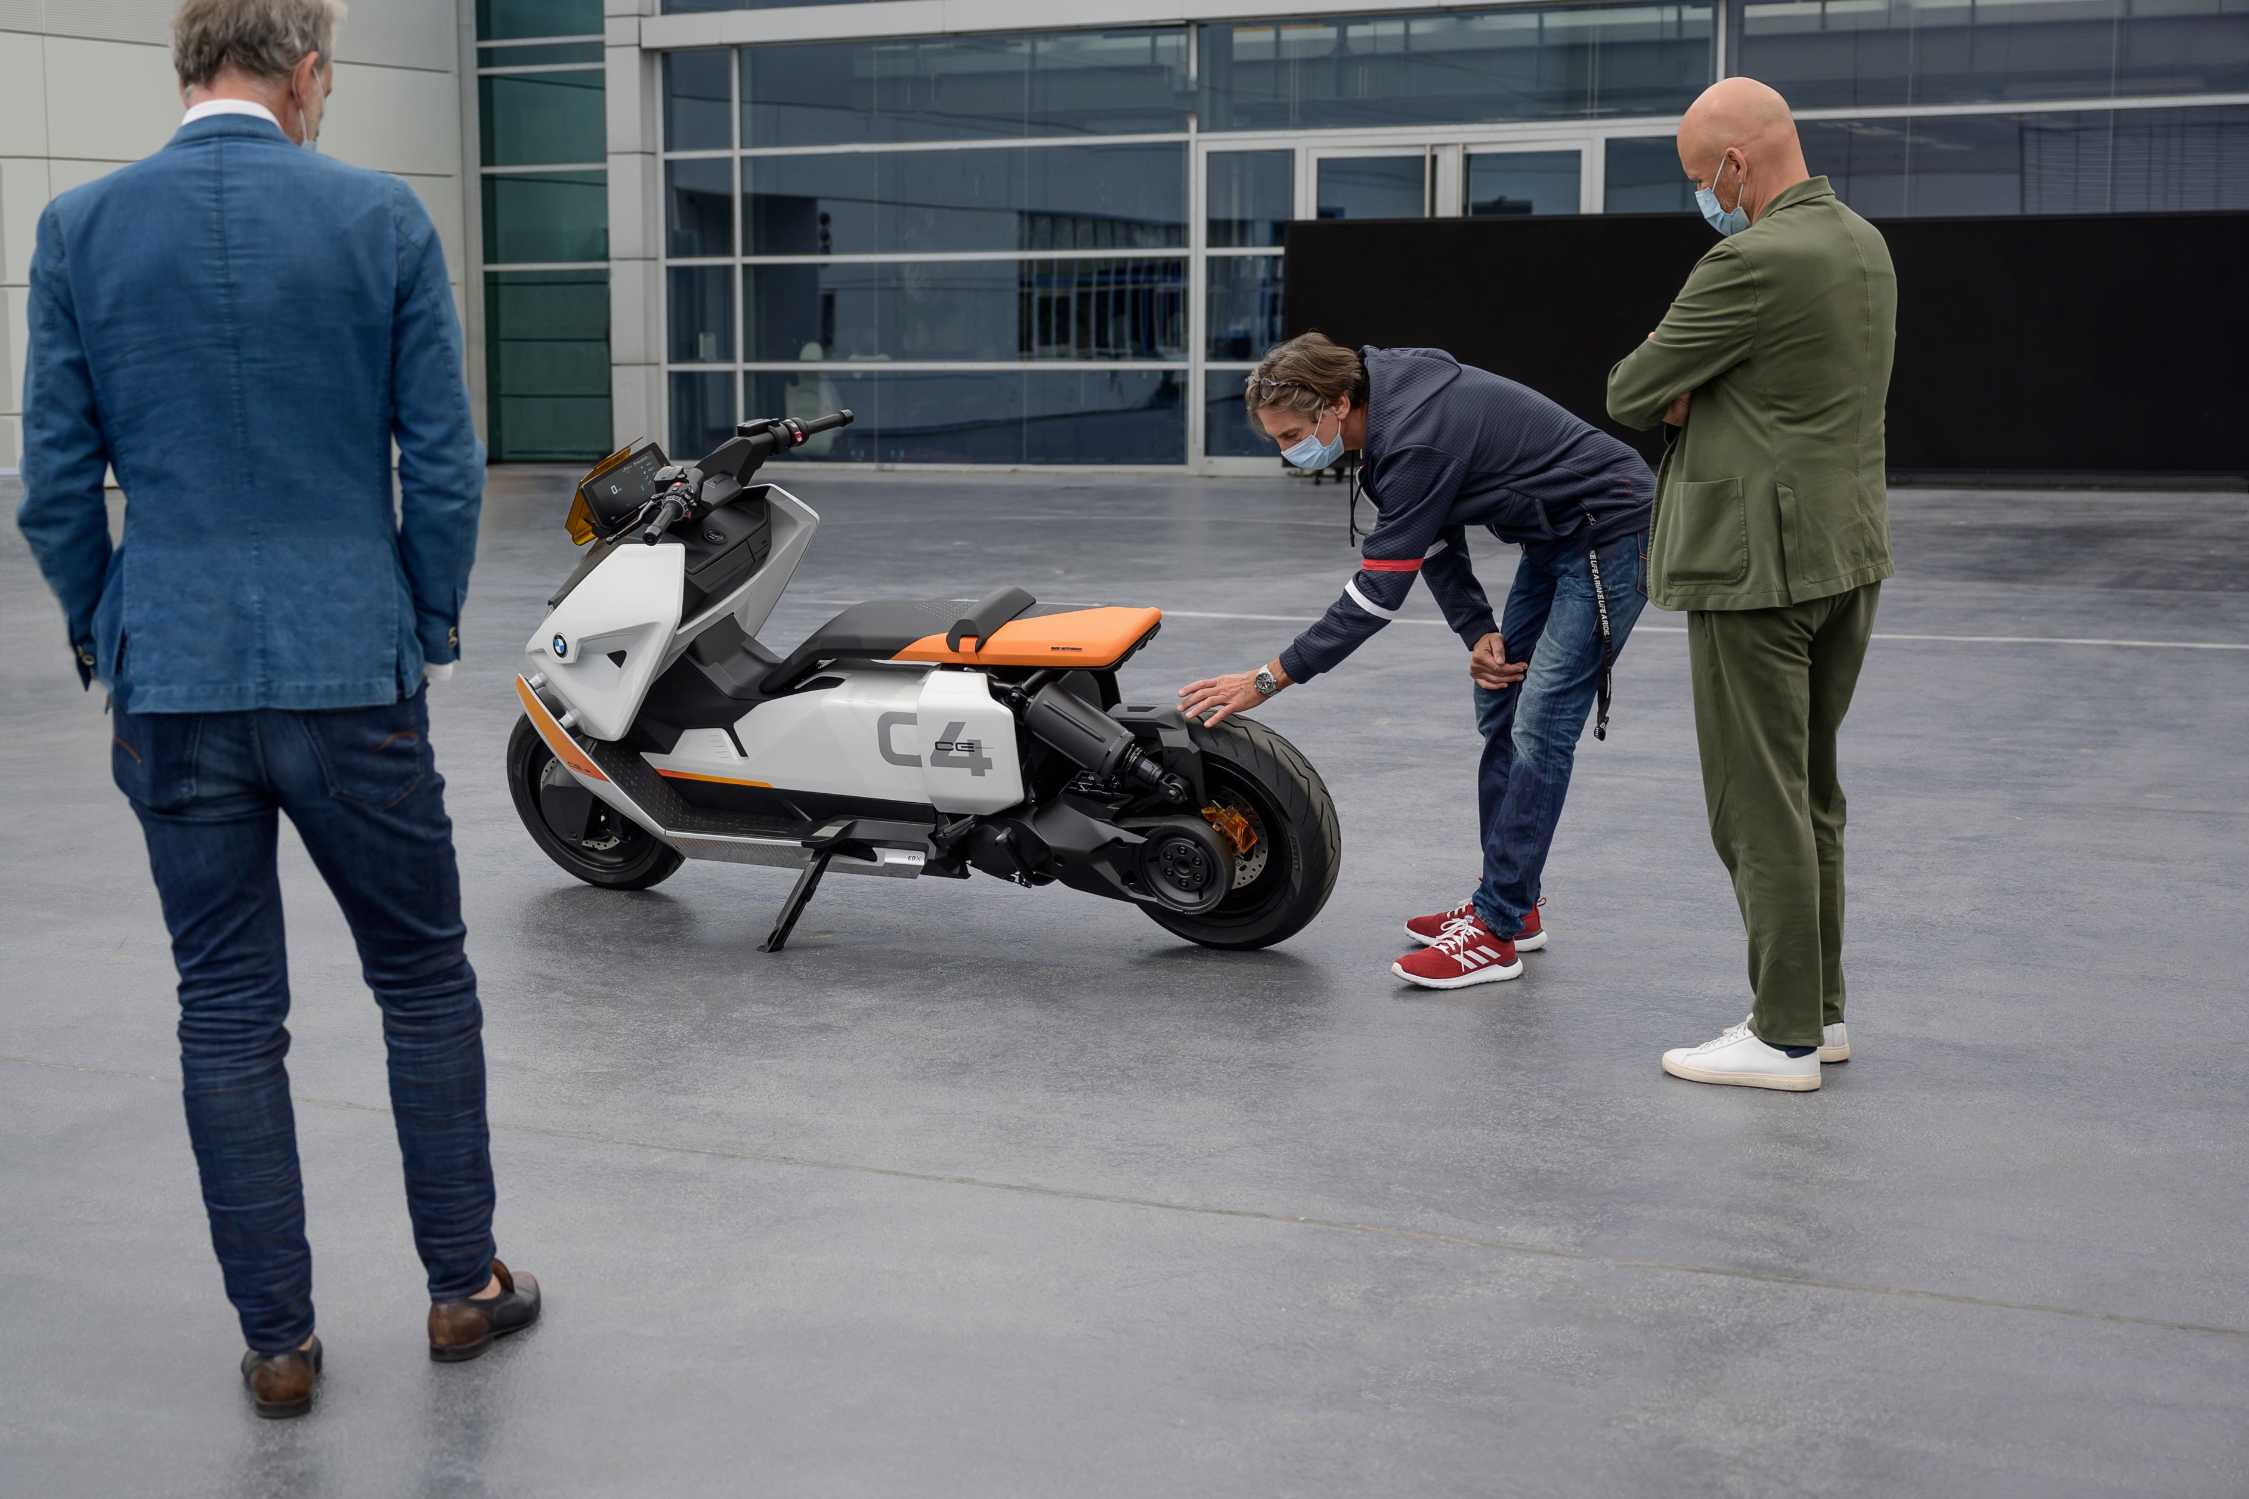 BMW Definition CE 04. Reportage. (11/2020)